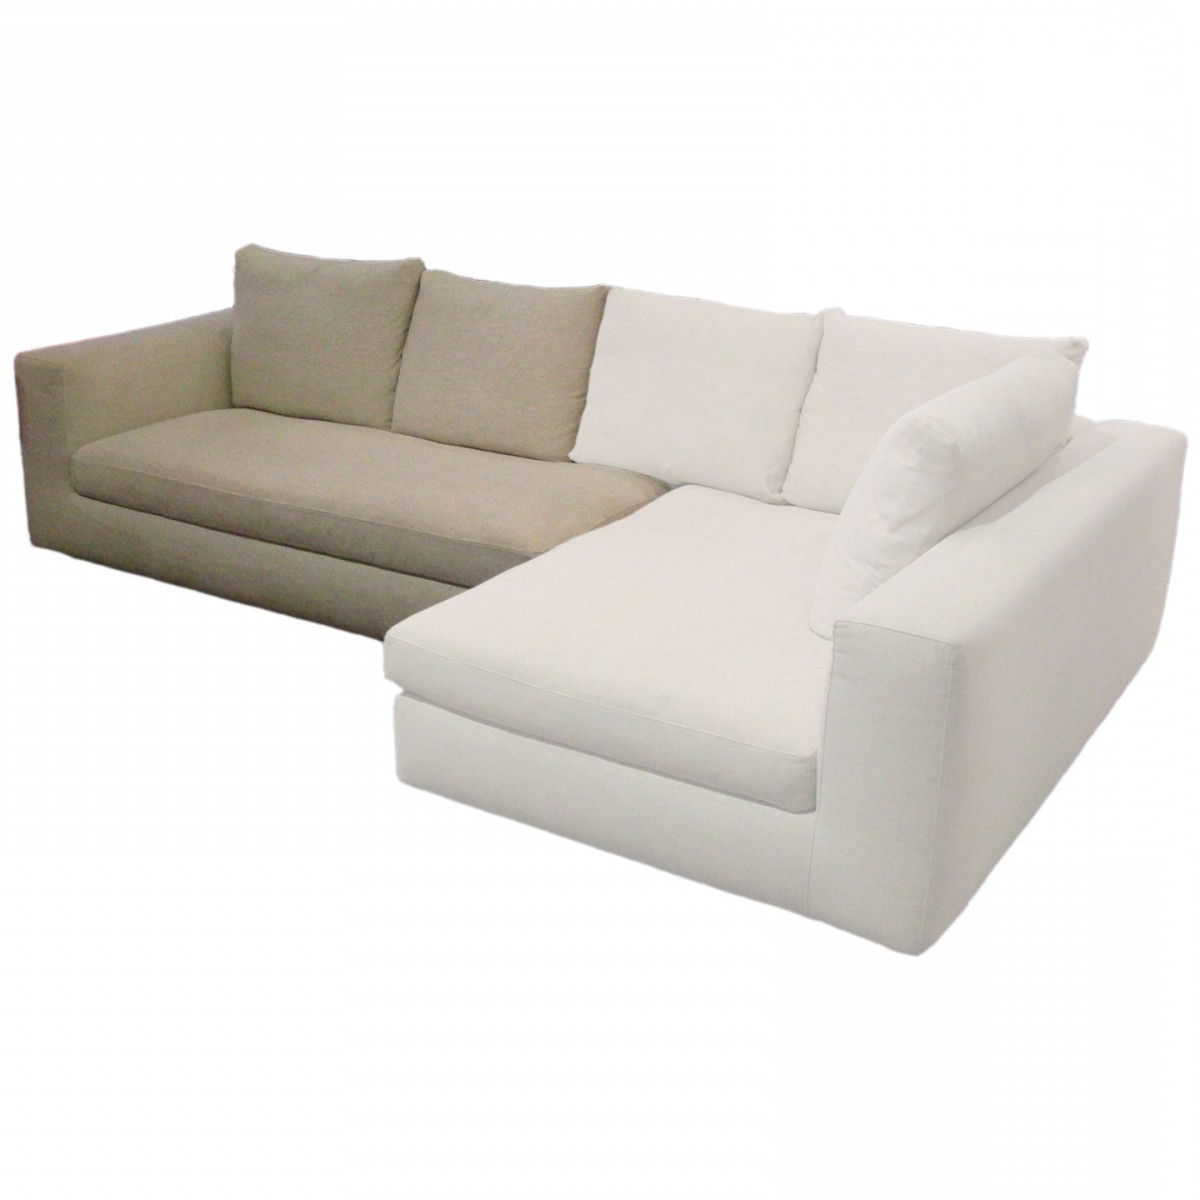 Popular Marea 1 Arm Sofa 188X108Cm Inside Gordon Arm Sofa Chairs (View 16 of 20)